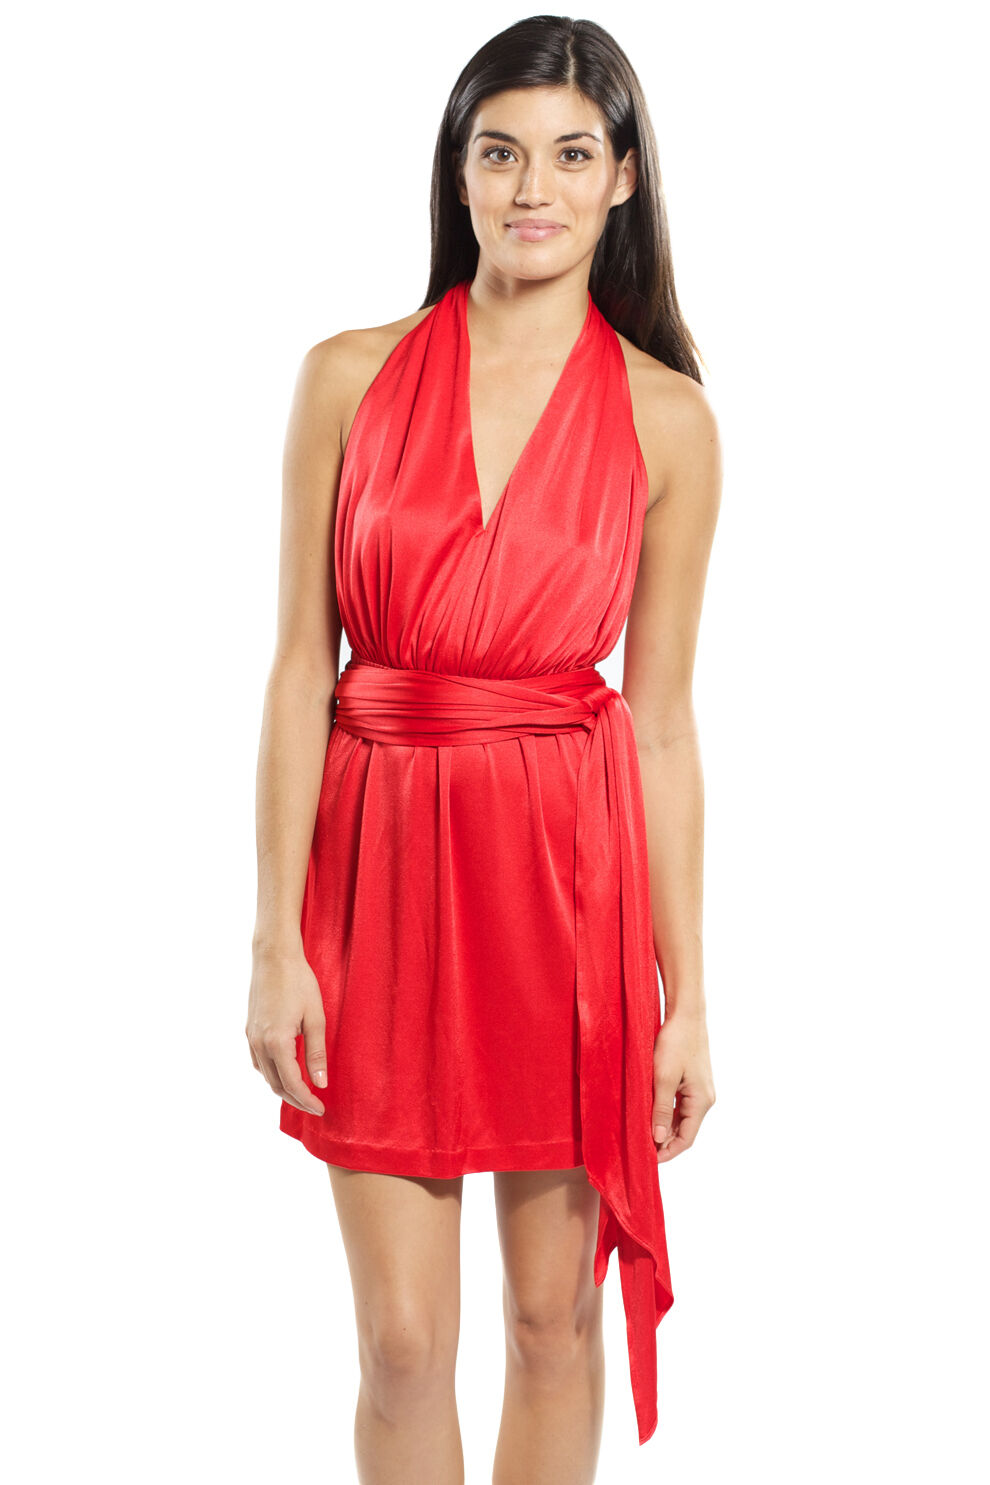 Halston Heritage V-neck Halter Day Short Dress Crimson rot Slinky jersey tie NEW